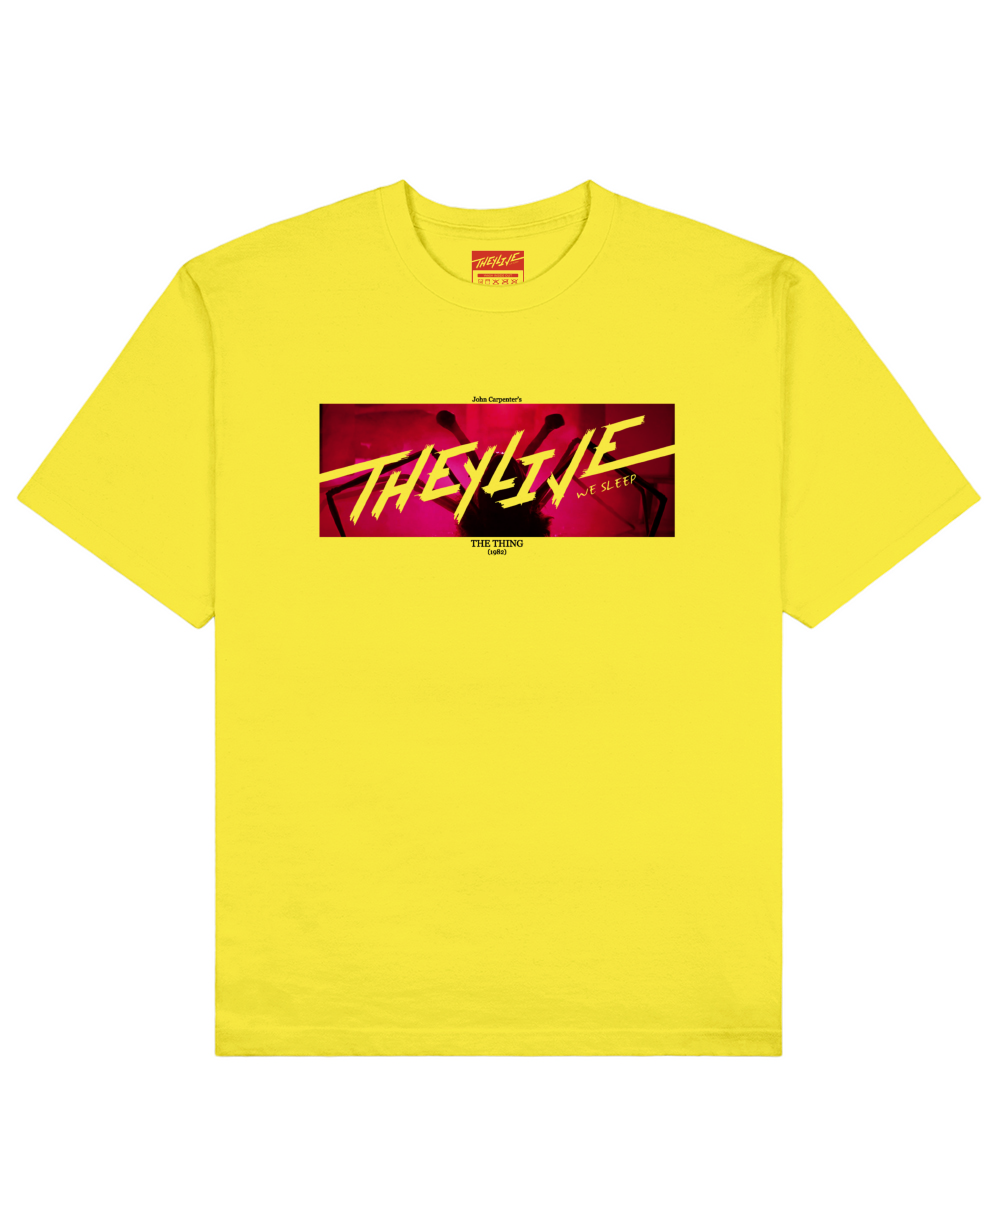 The Thing Print T-Shirt in Yellow - T-Shirts - THEYLIVE - BRANMA